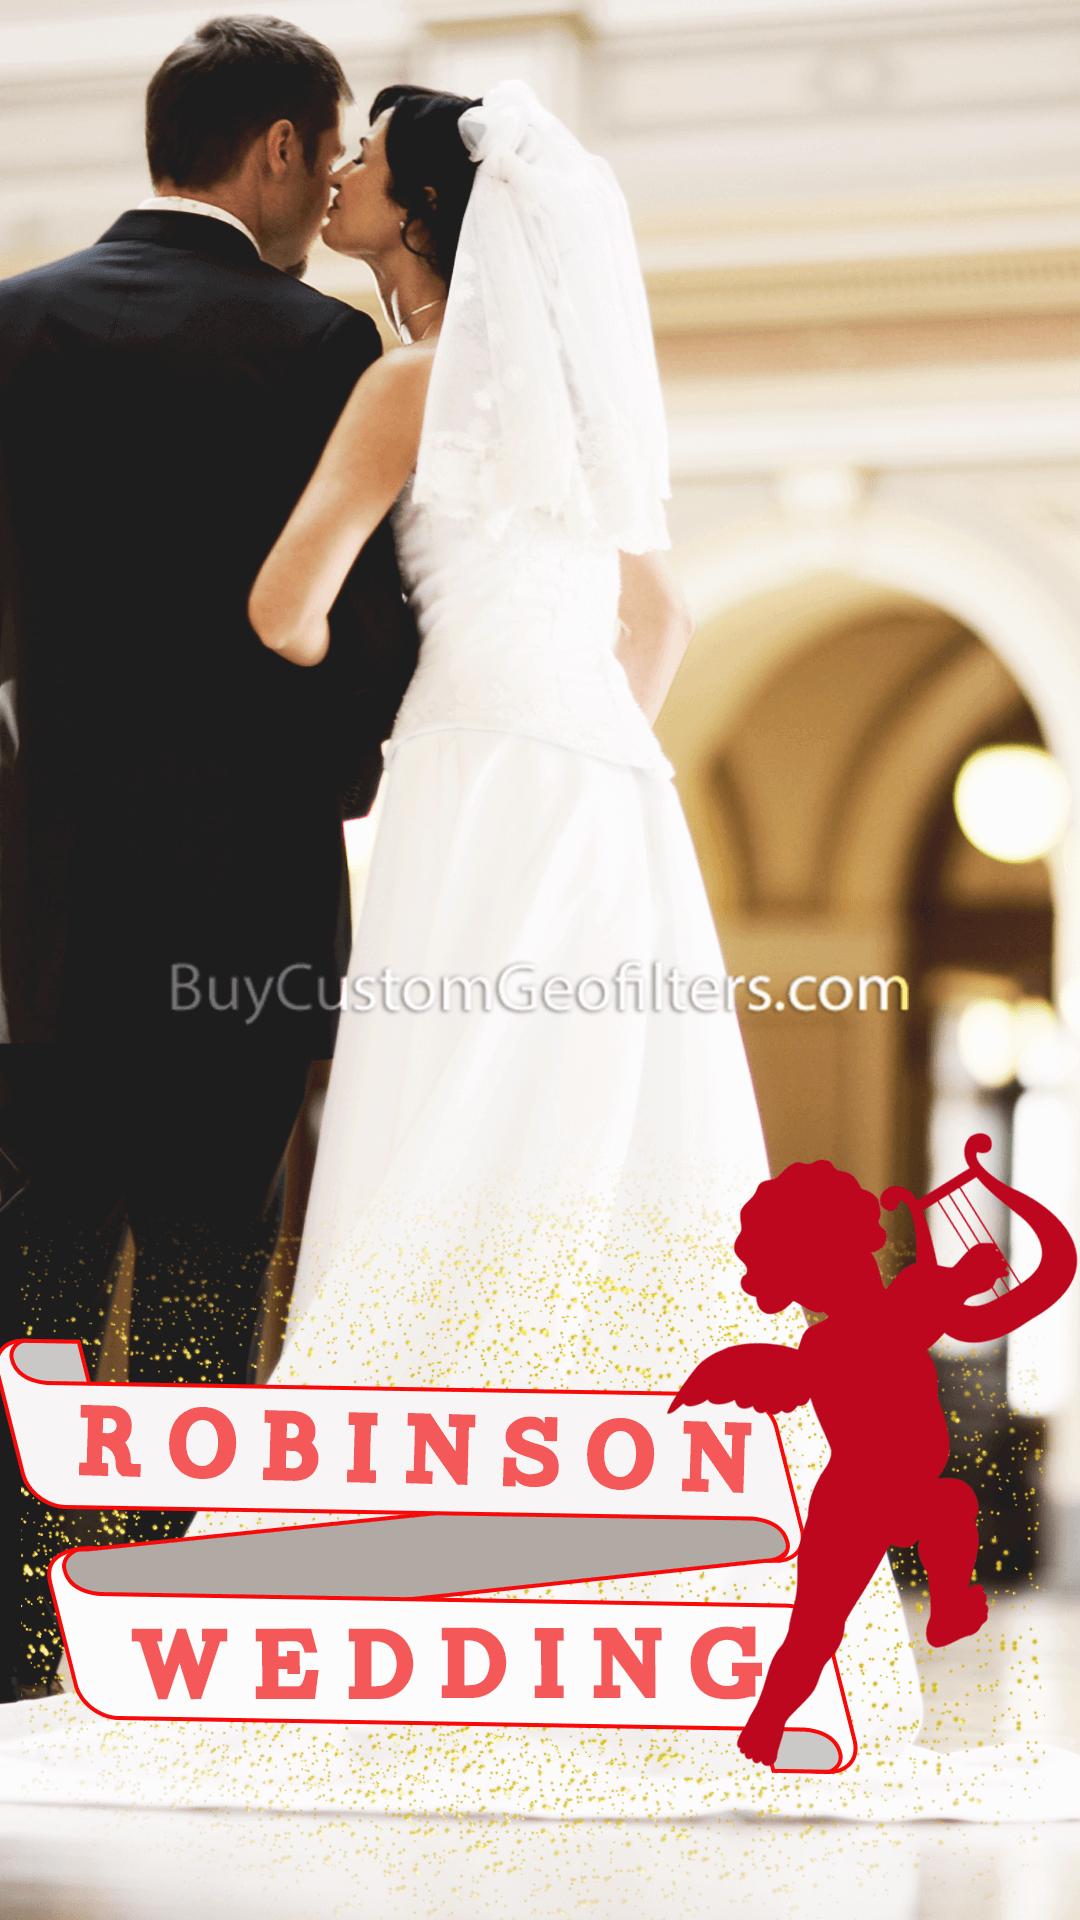 snapchat-wedding-geofilters-for-robinson-wedding.png